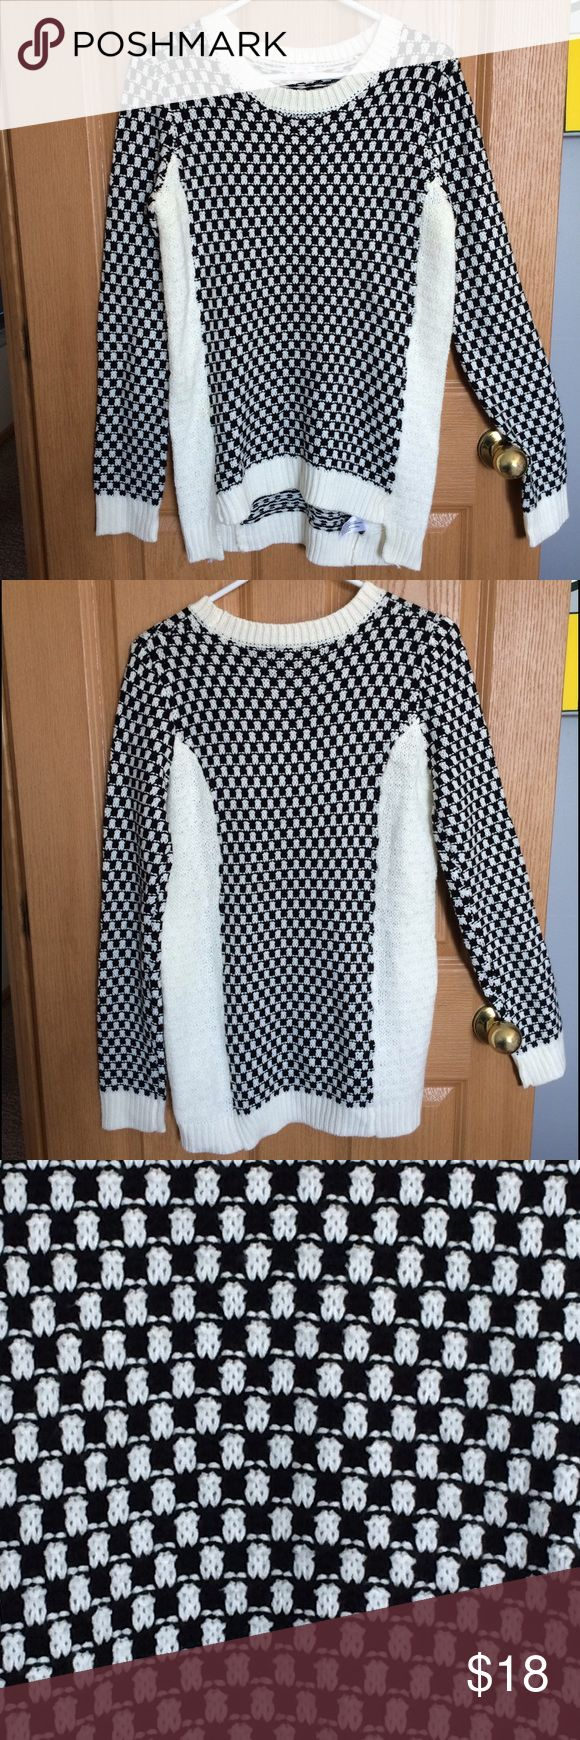 Long sleeve crew neck sweater Black & white checkered body & sleeve pattern with white neckline trim, sleeve cuffs & down the sides of body. Super, super comfortable & soft. Worn twice! Slightly longer length in the back. 100% acrylic. Xhilaration Sweaters Crew & Scoop Necks